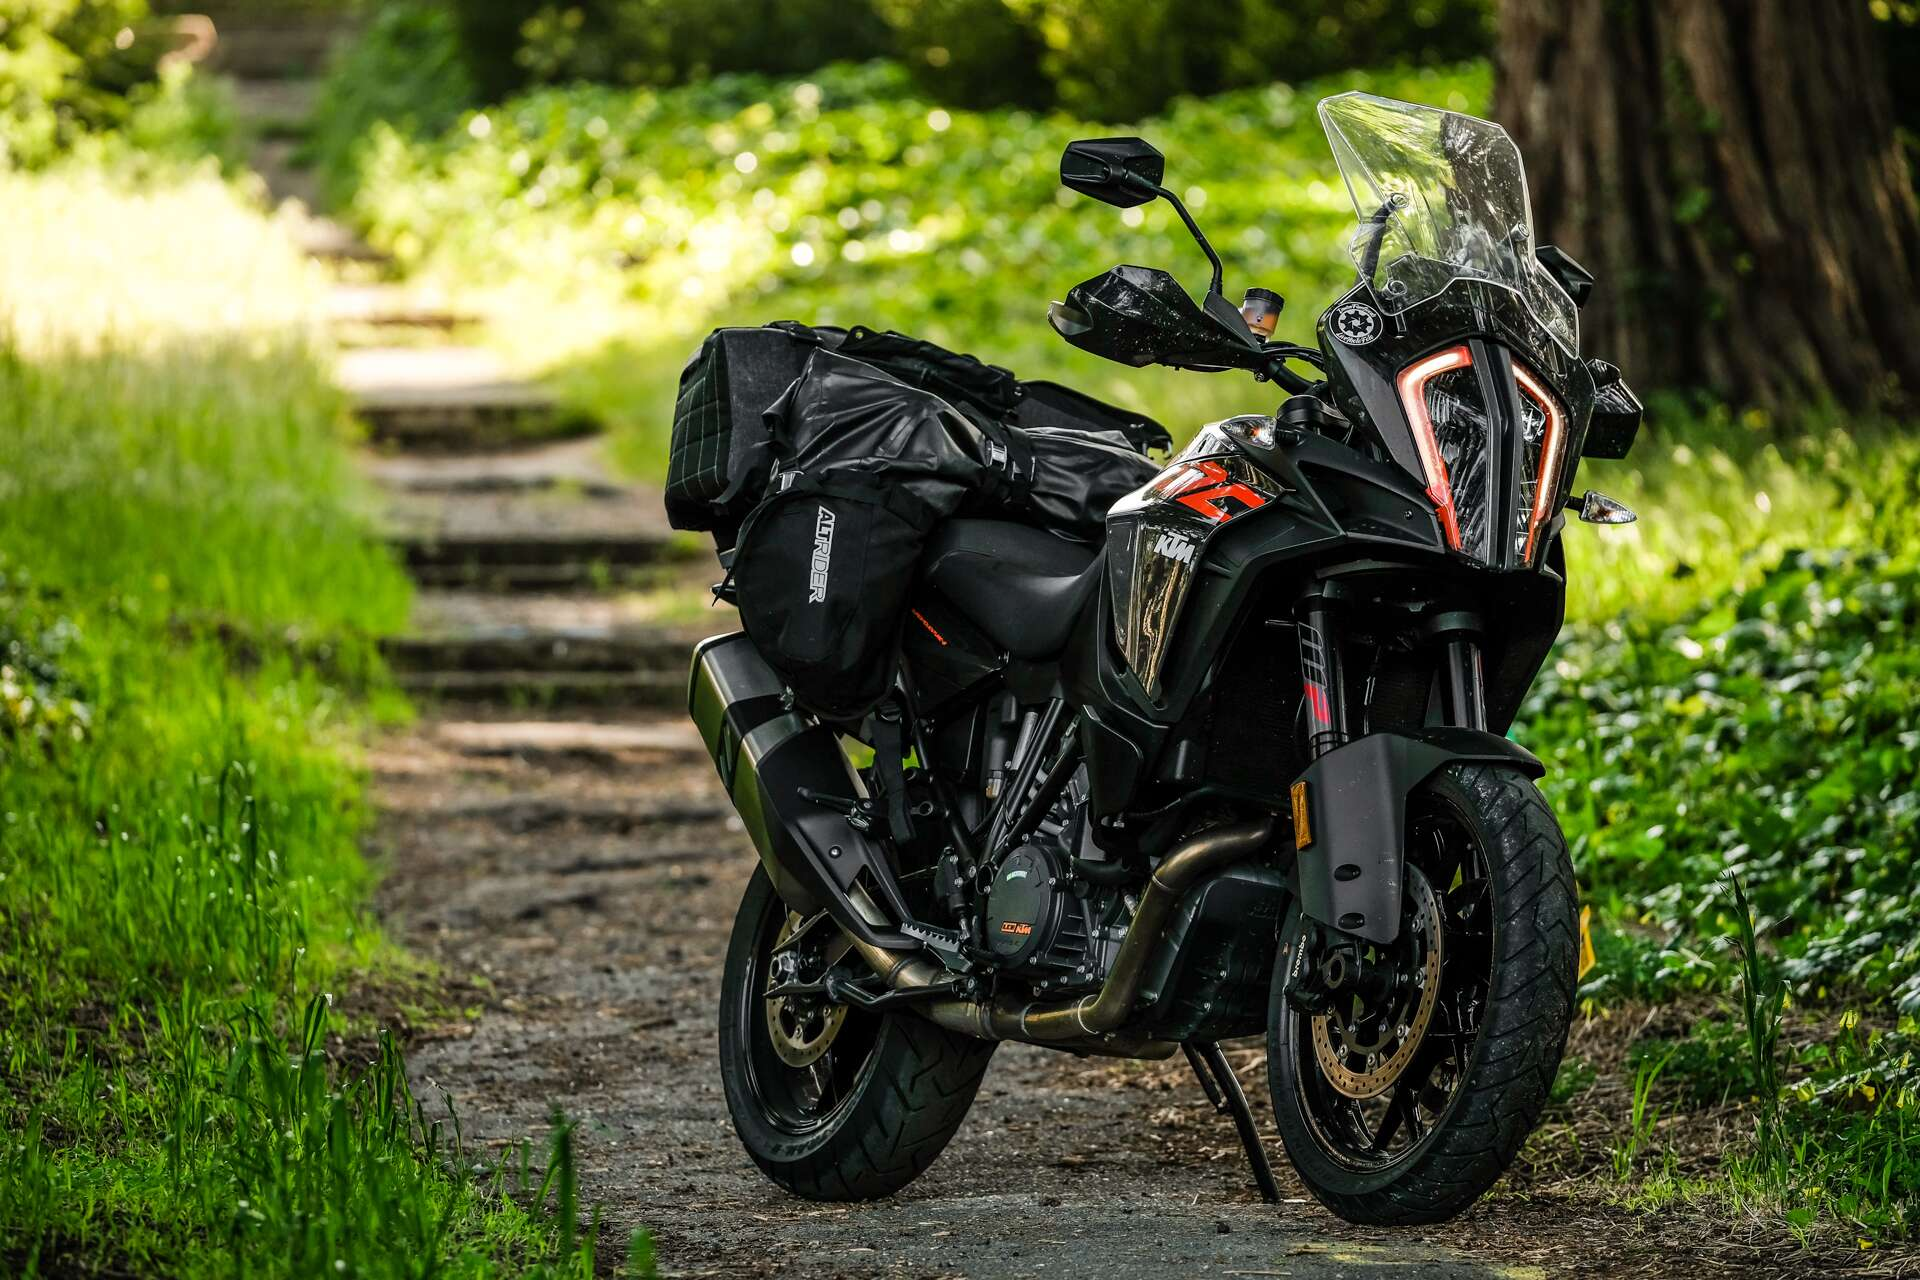 ktm 1290 super adventure s review paradise found on the. Black Bedroom Furniture Sets. Home Design Ideas